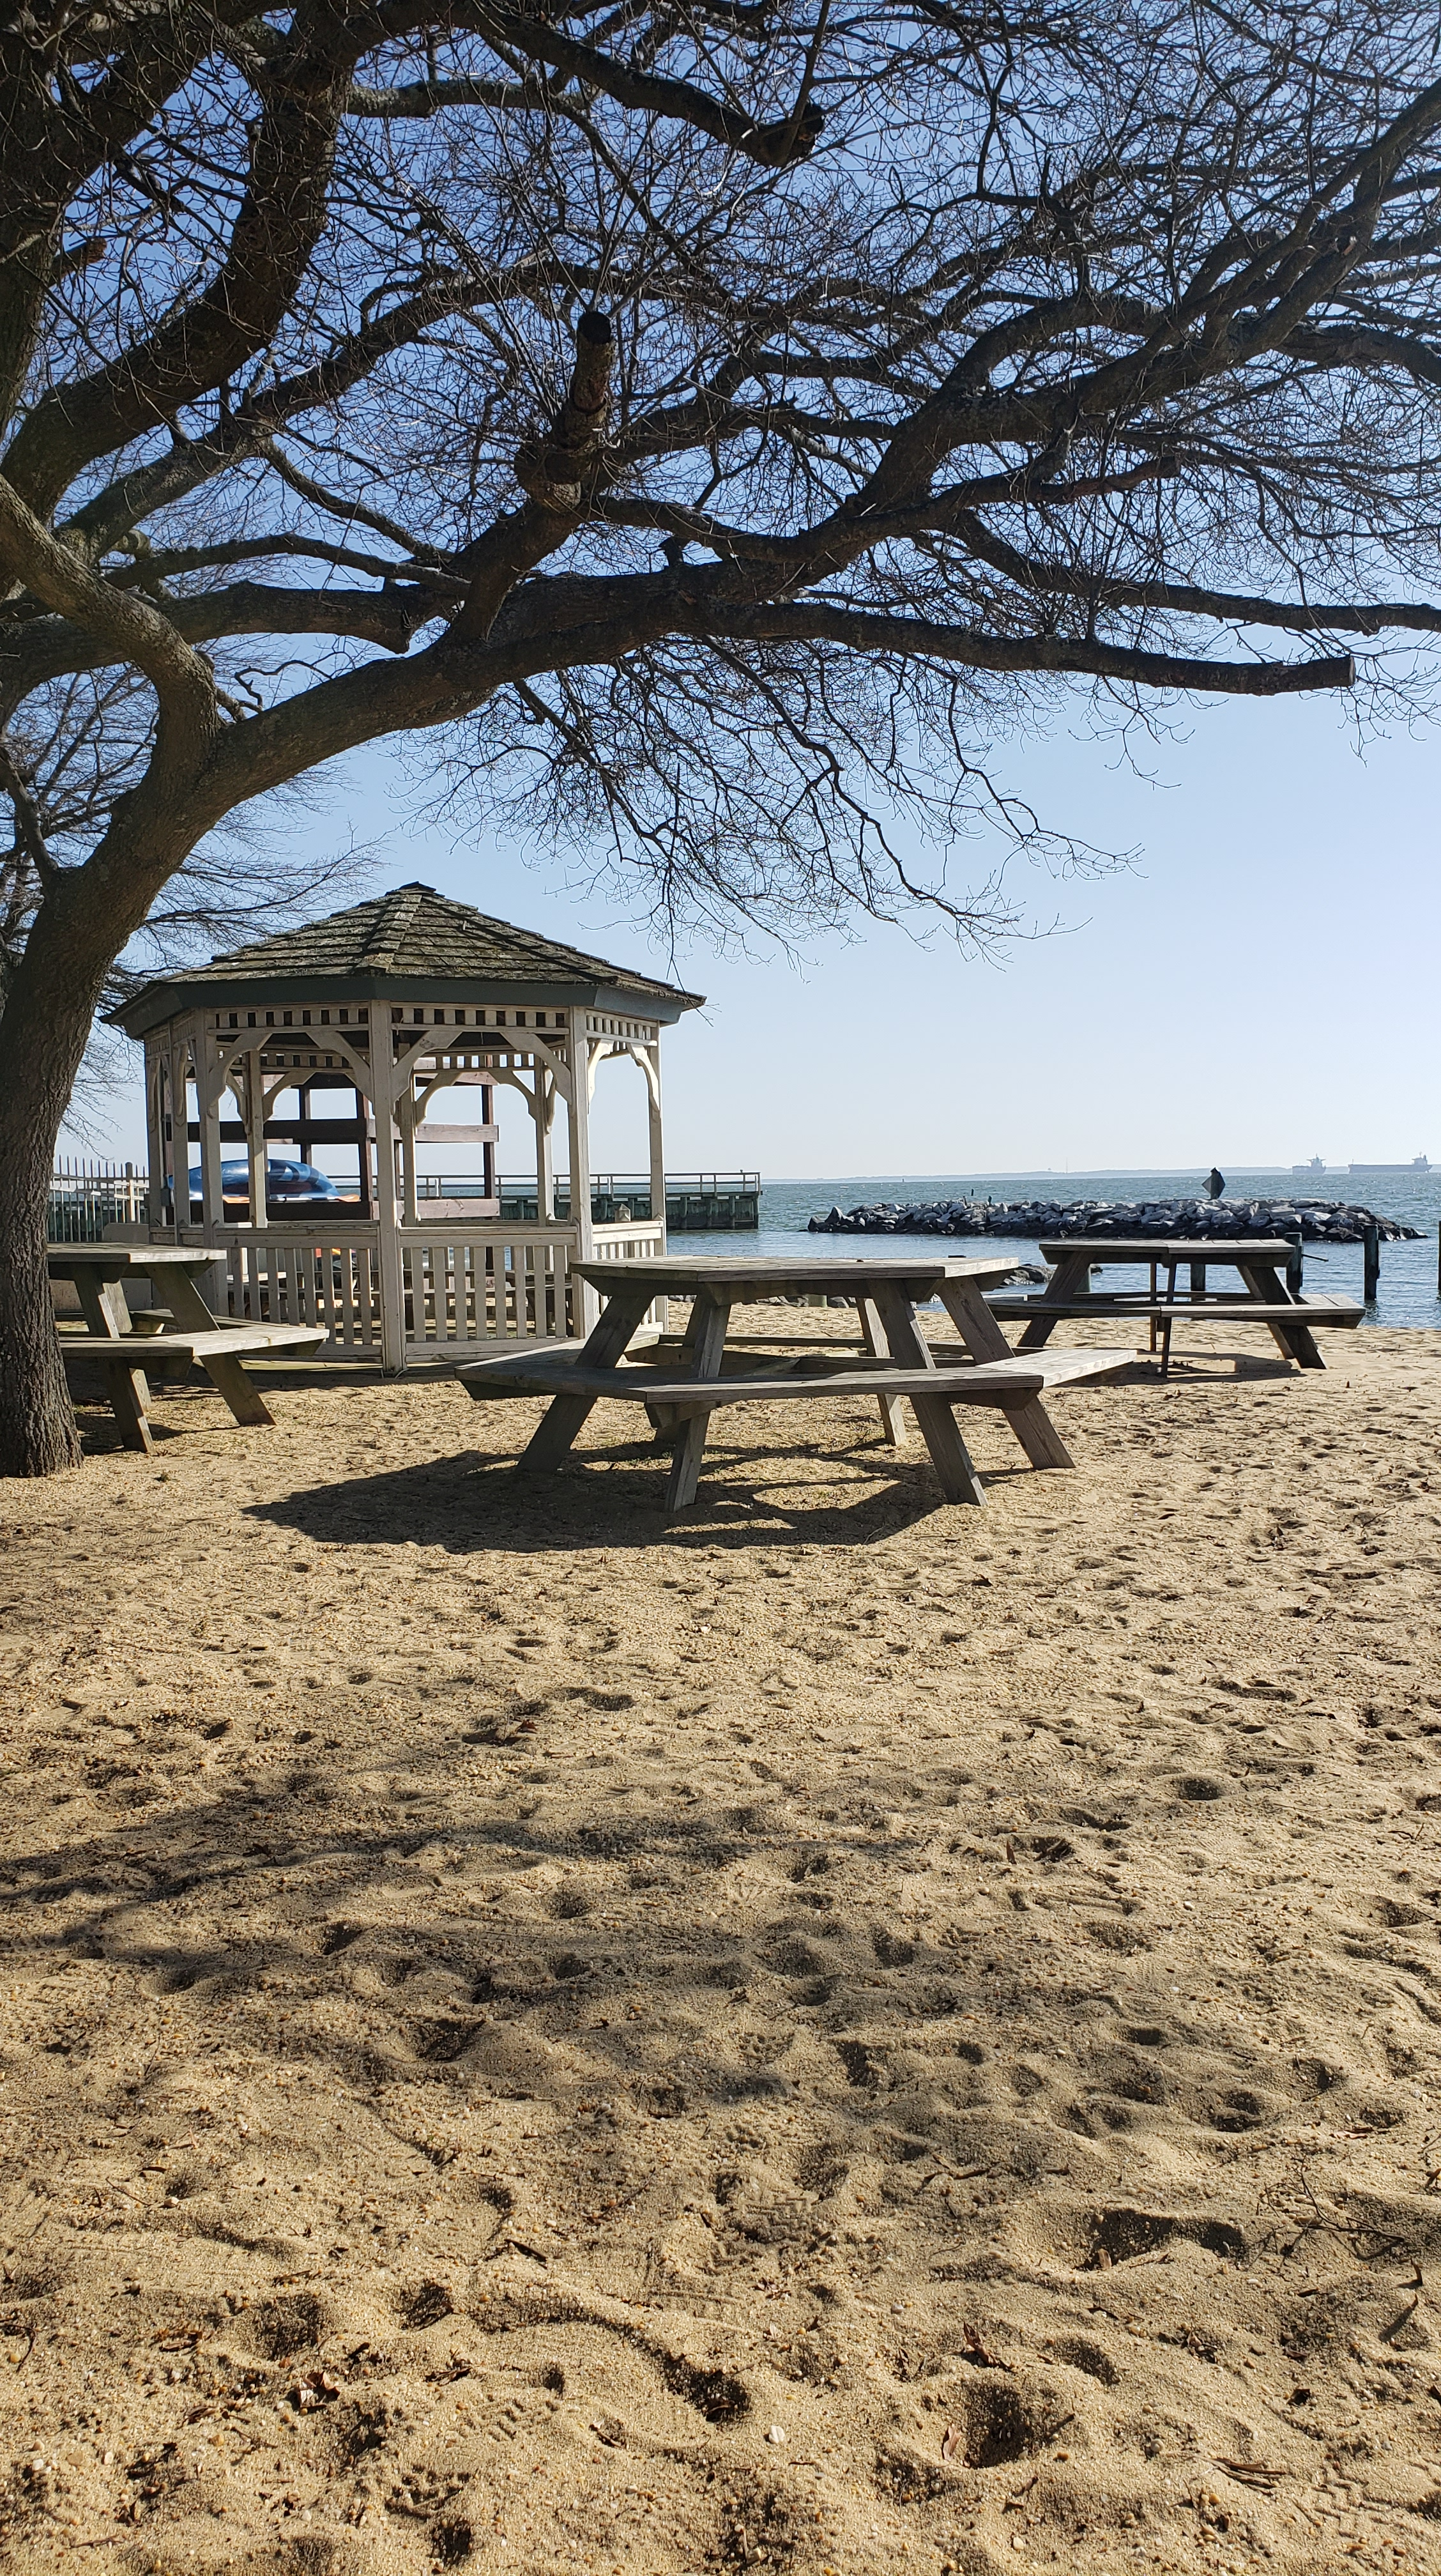 Gazebo at the community's beach. Not pictured: The playground off to the left.